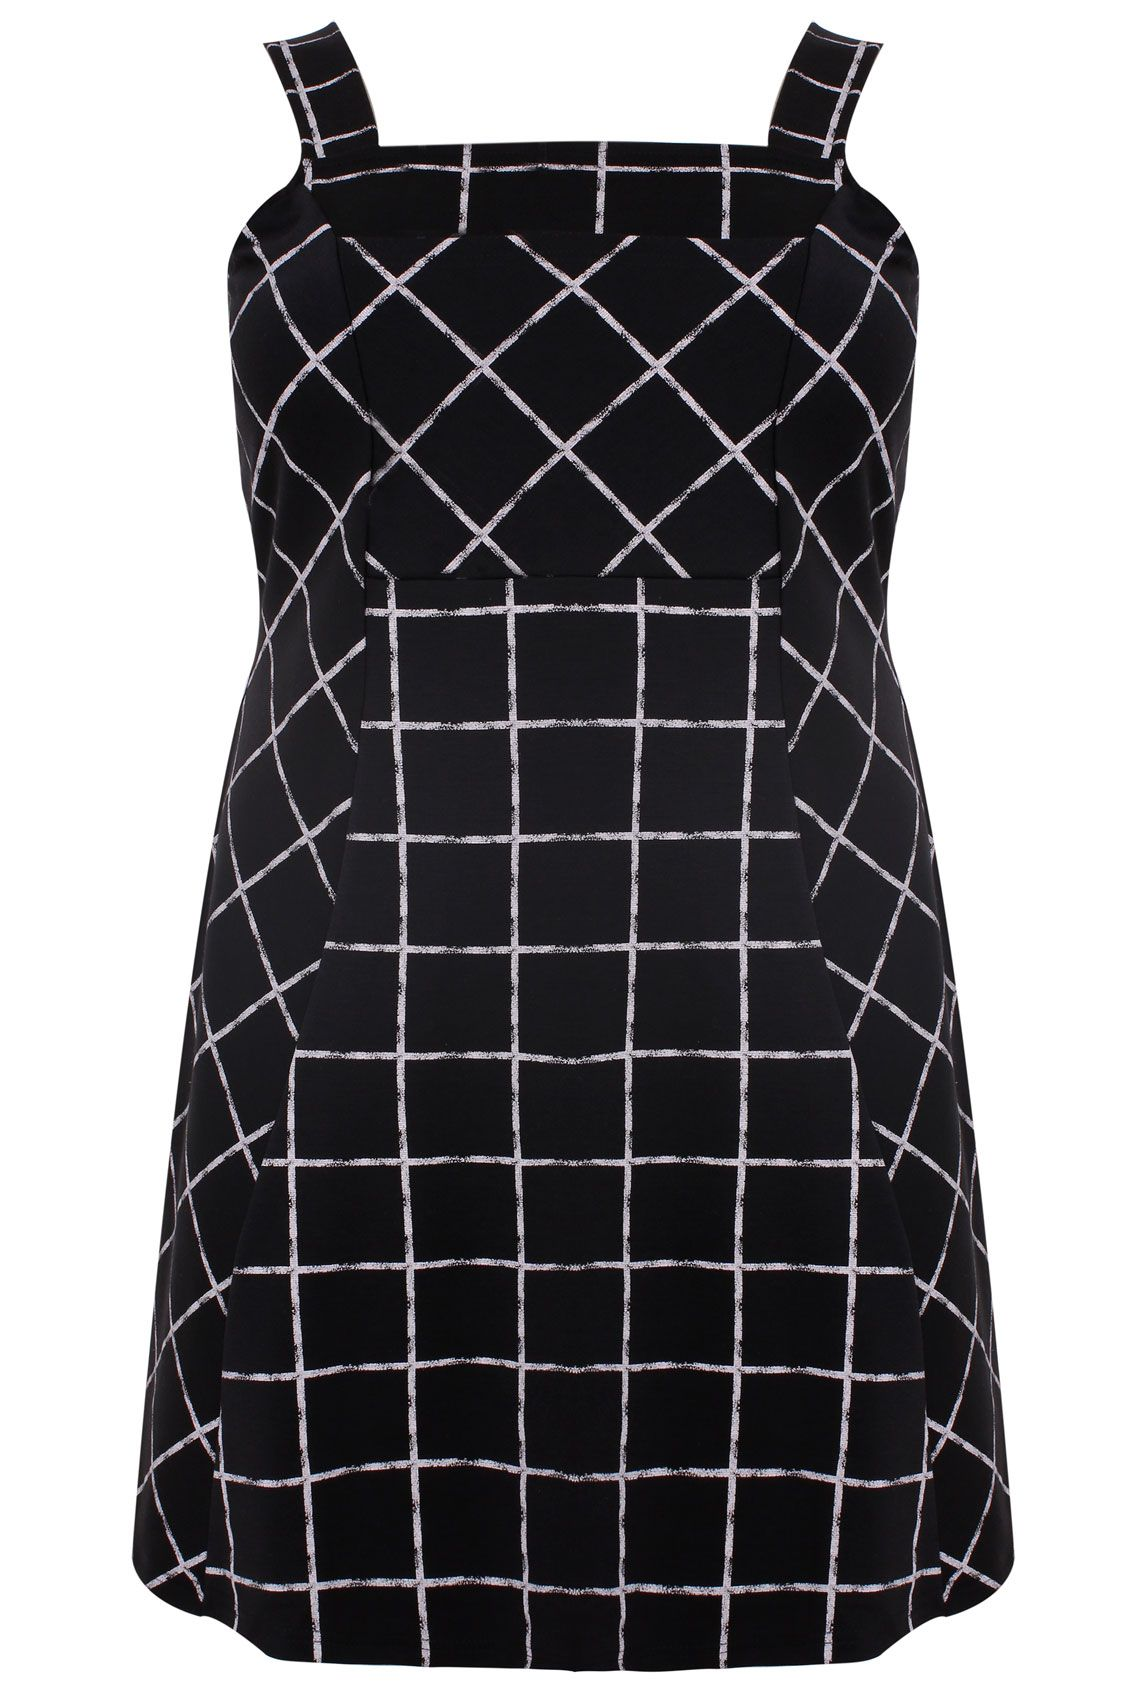 7d6b22629d8 Black   White Check Print Skater Pinafore Dress With Front Pouch Plus size  14